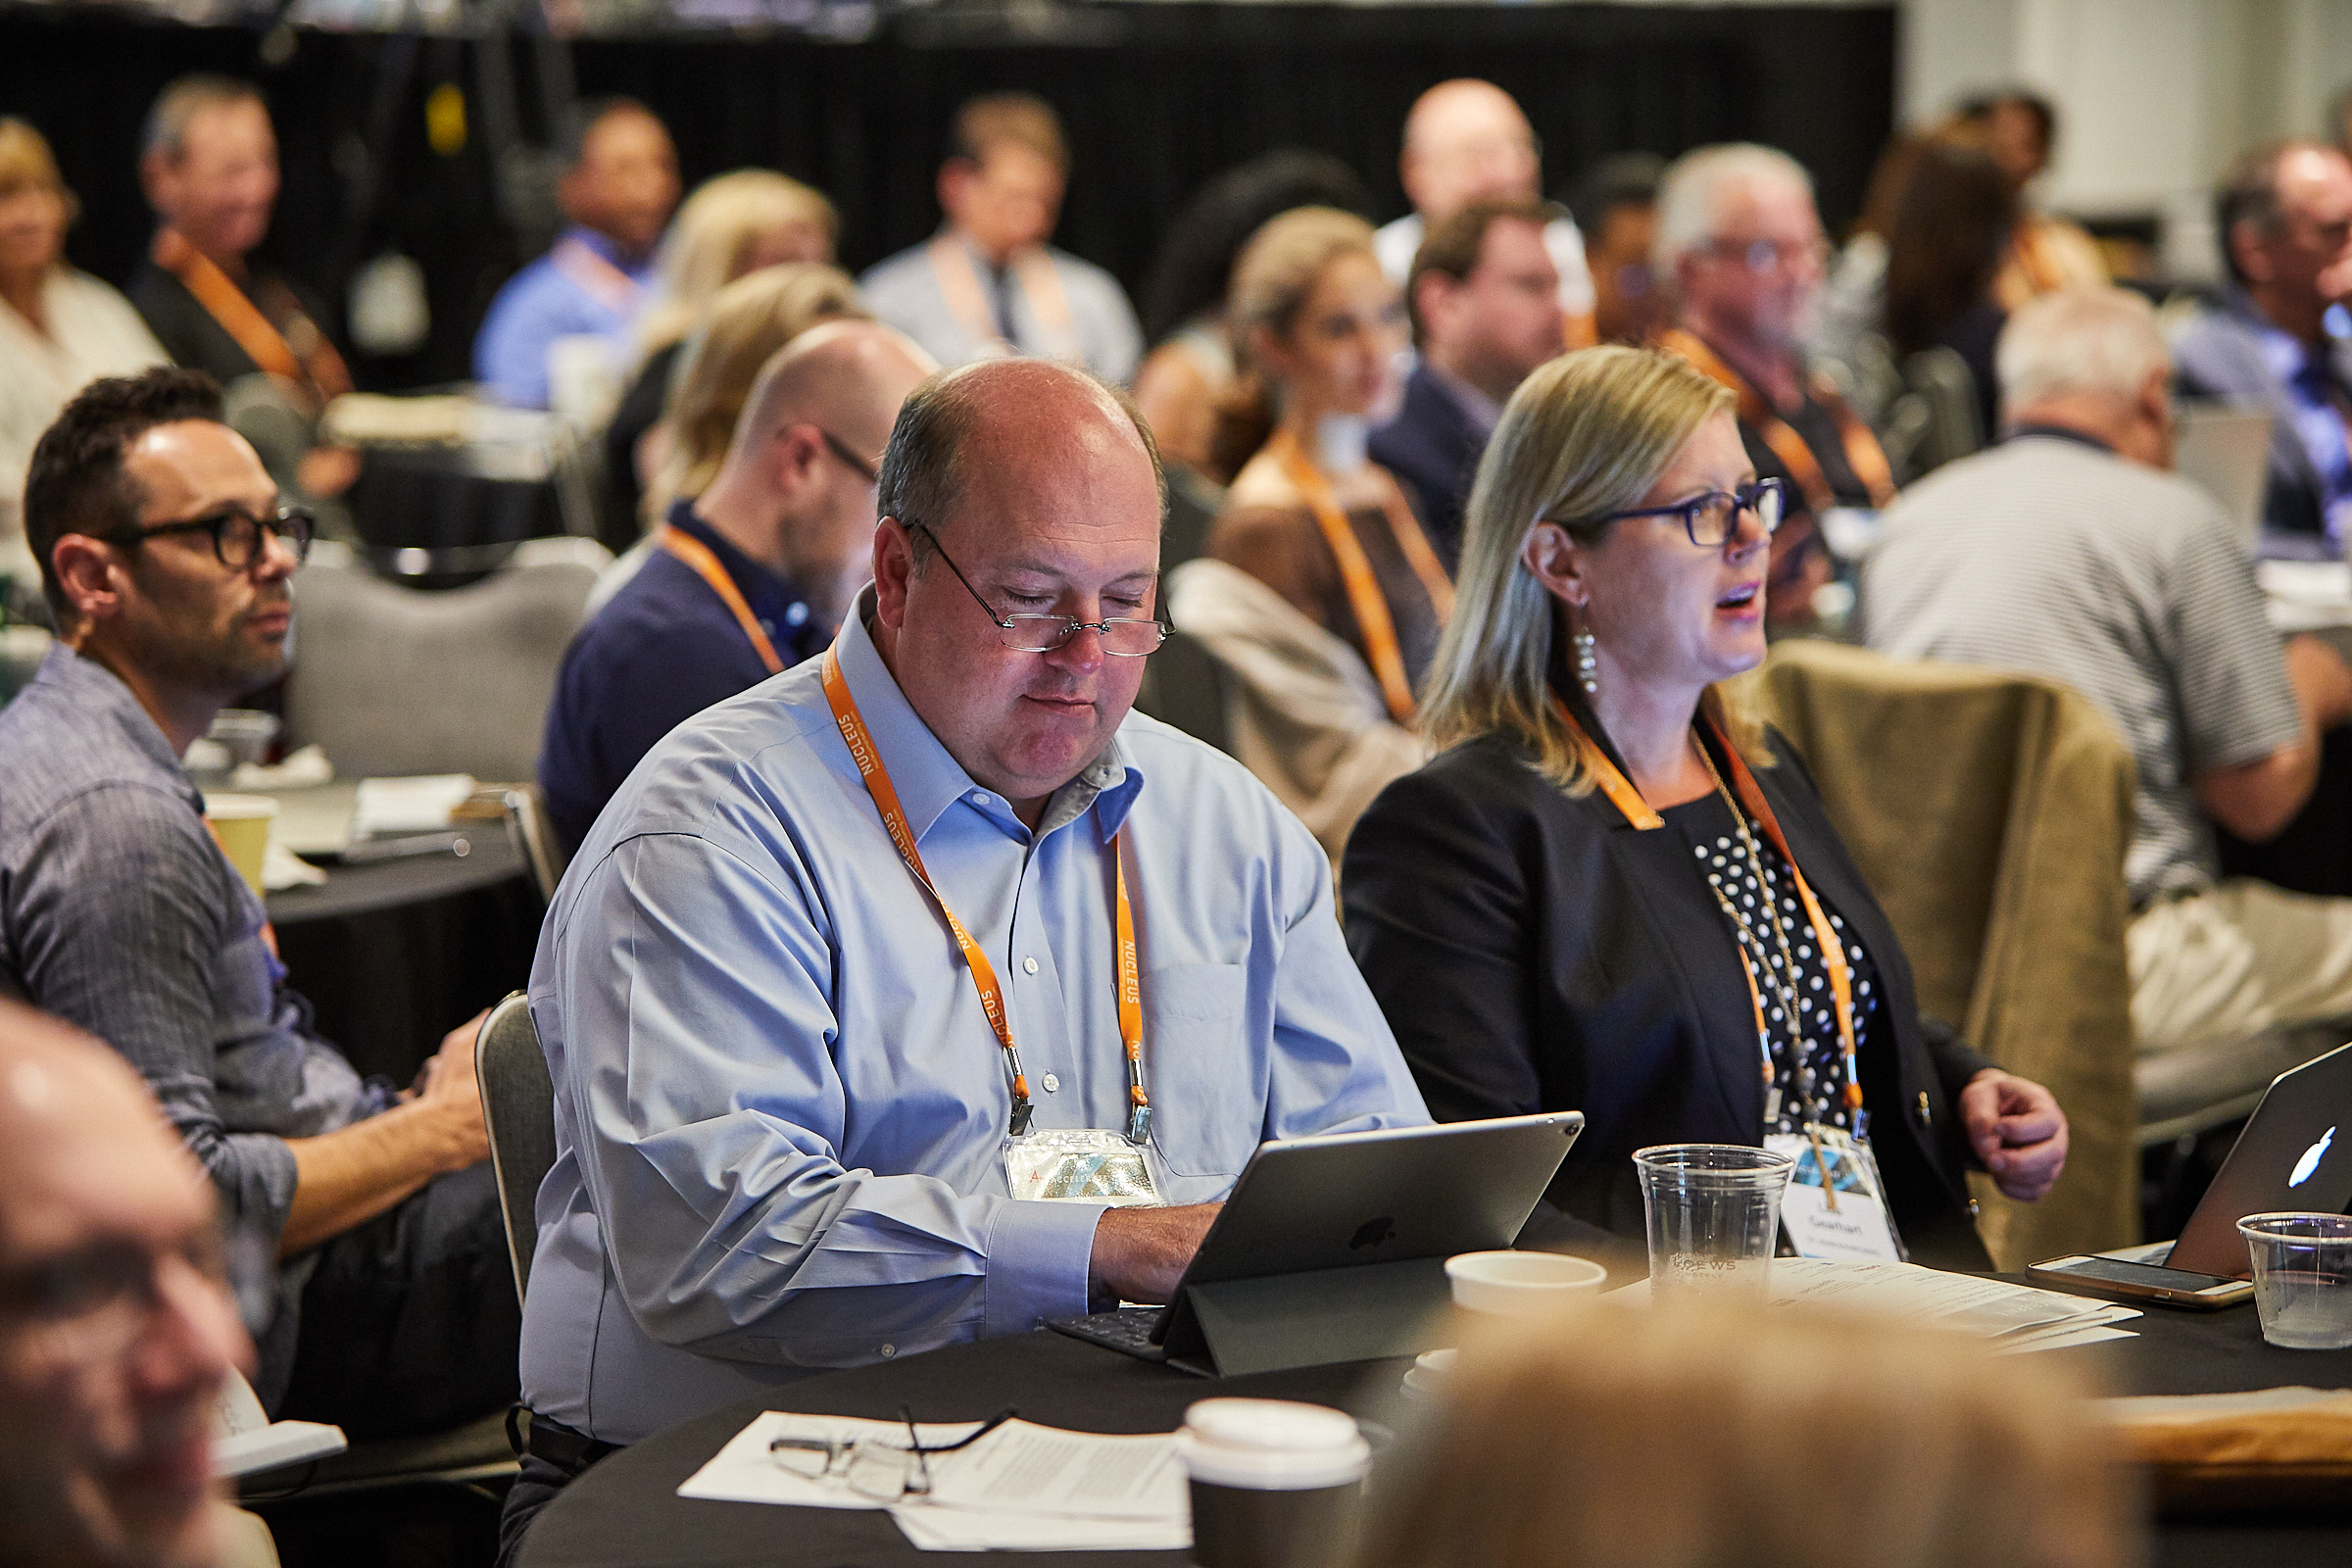 DayOneConference_129.jpg